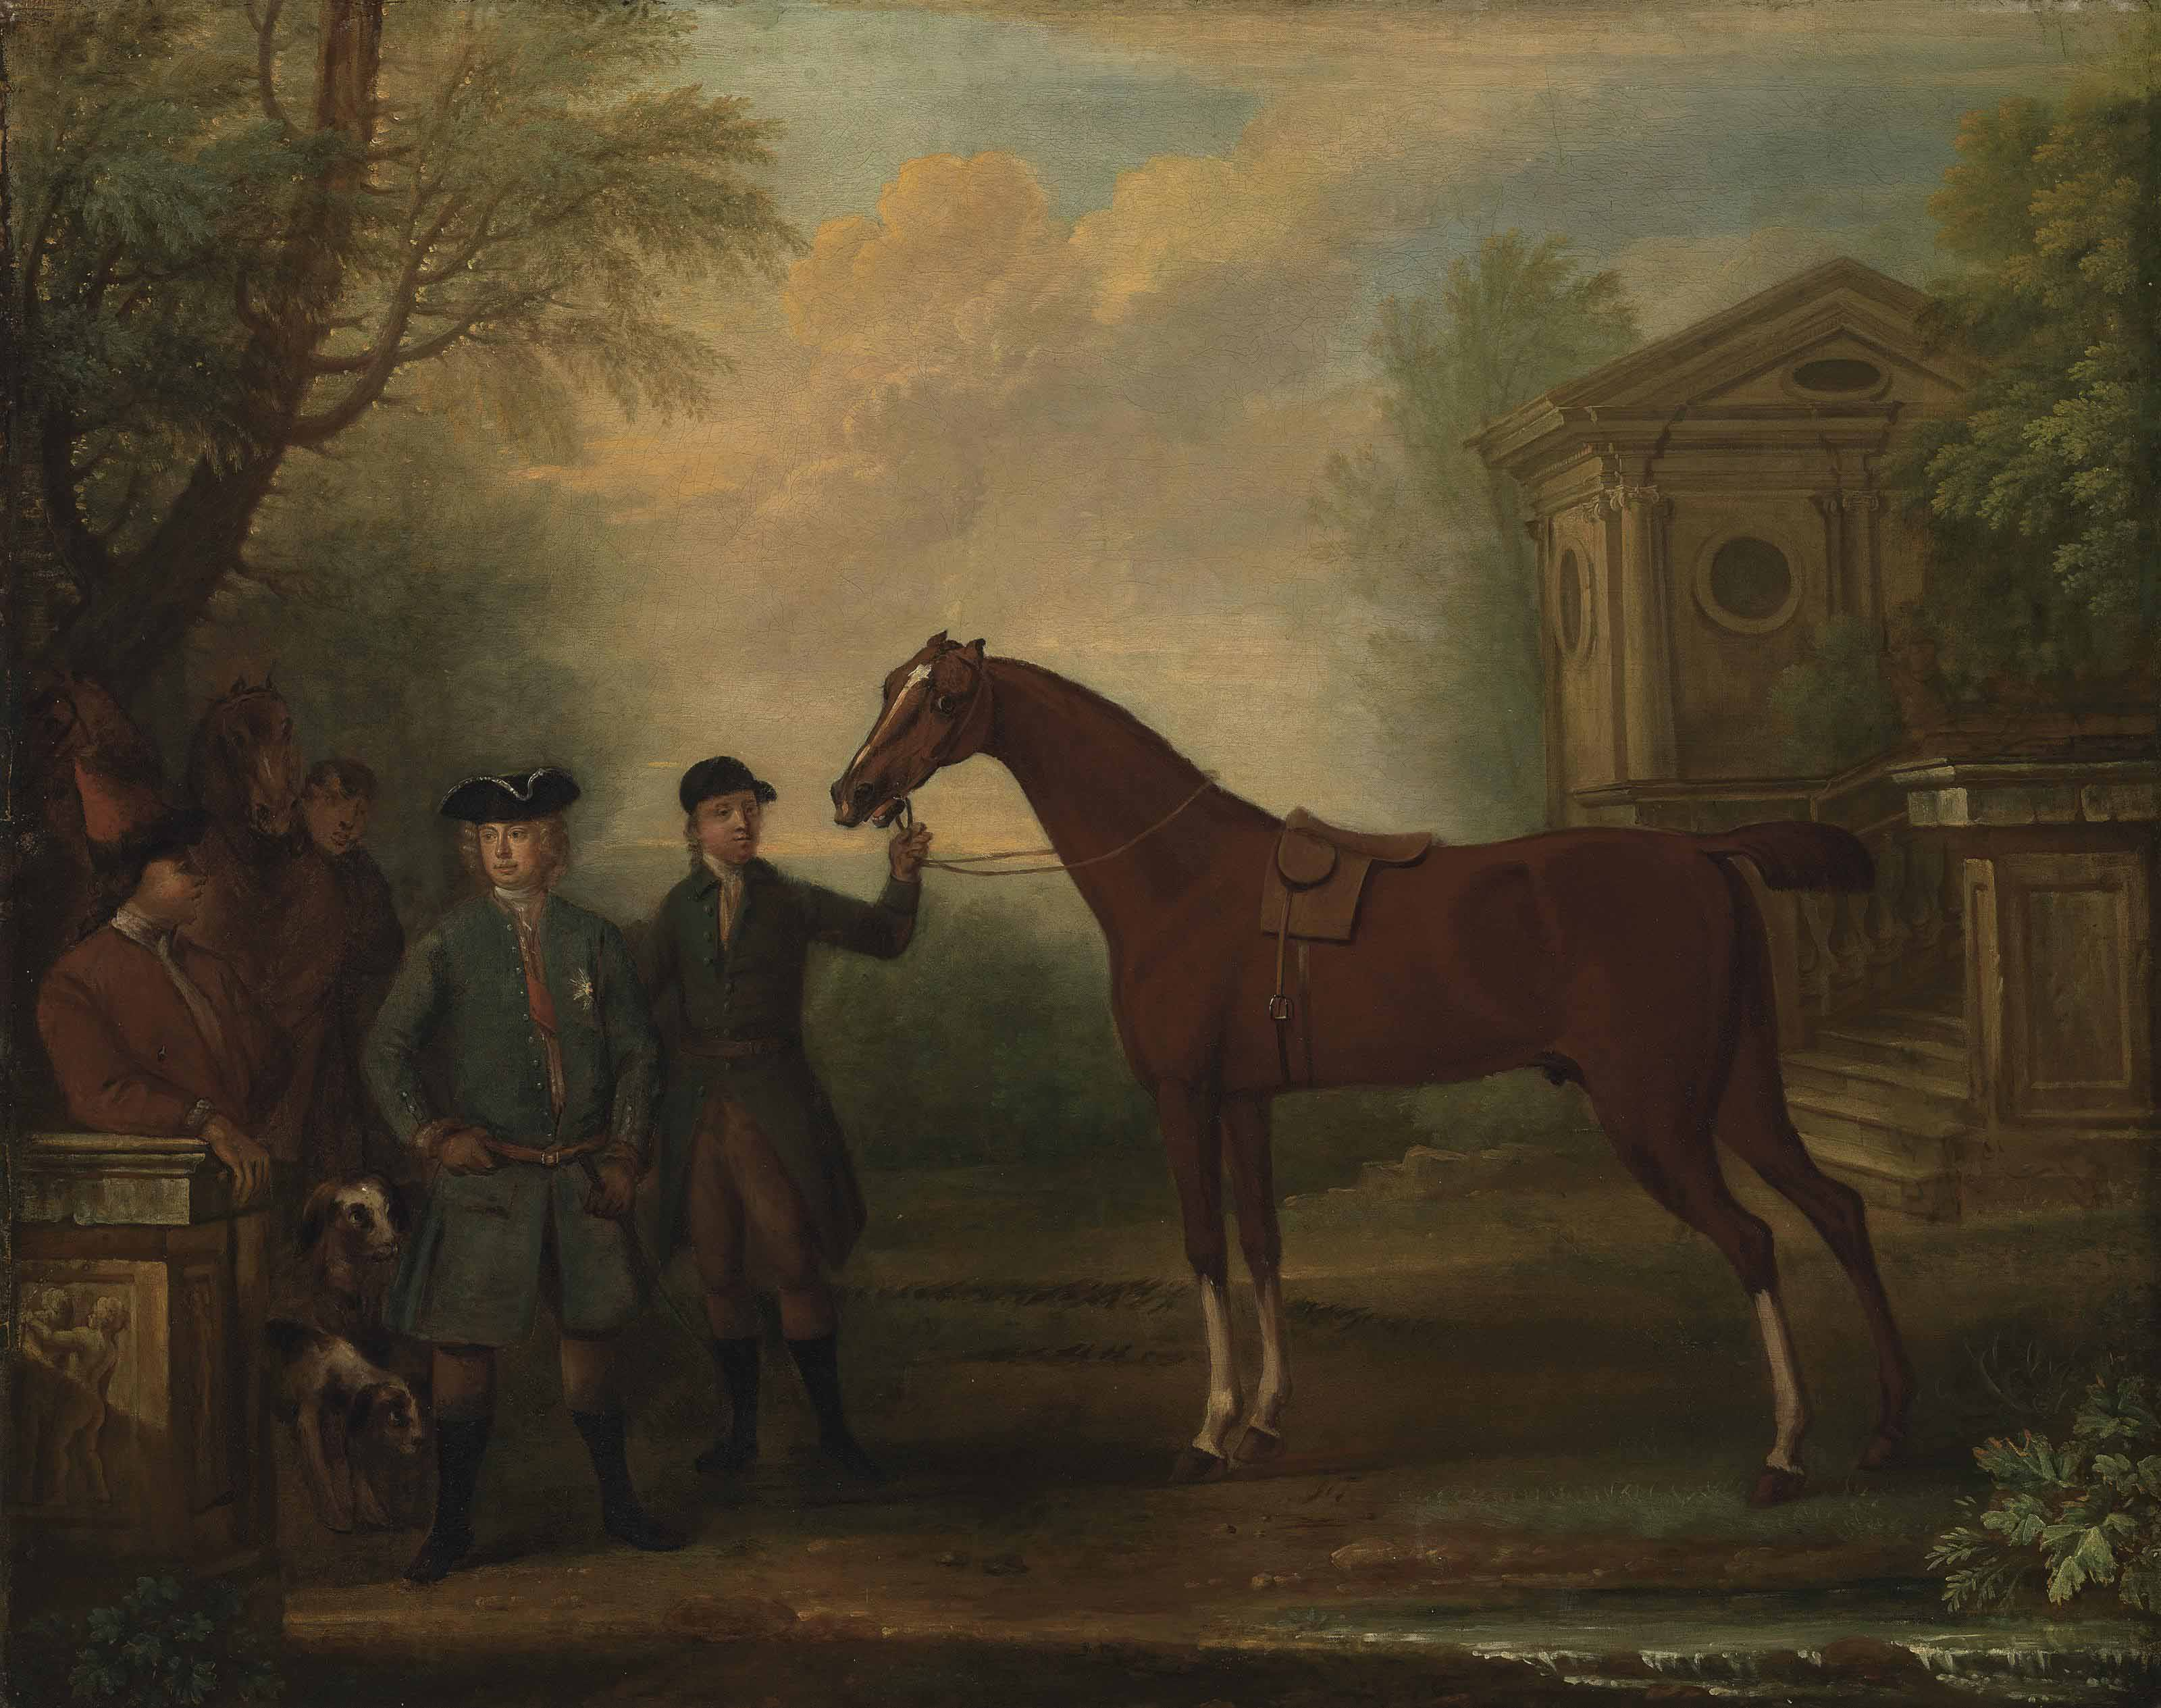 Sir Robert Walpole, 1st Earl of Orford (1676-1745), with a groom holding a bay hunter, other figures, horses and hounds, in a landscape, with a classical building beyond